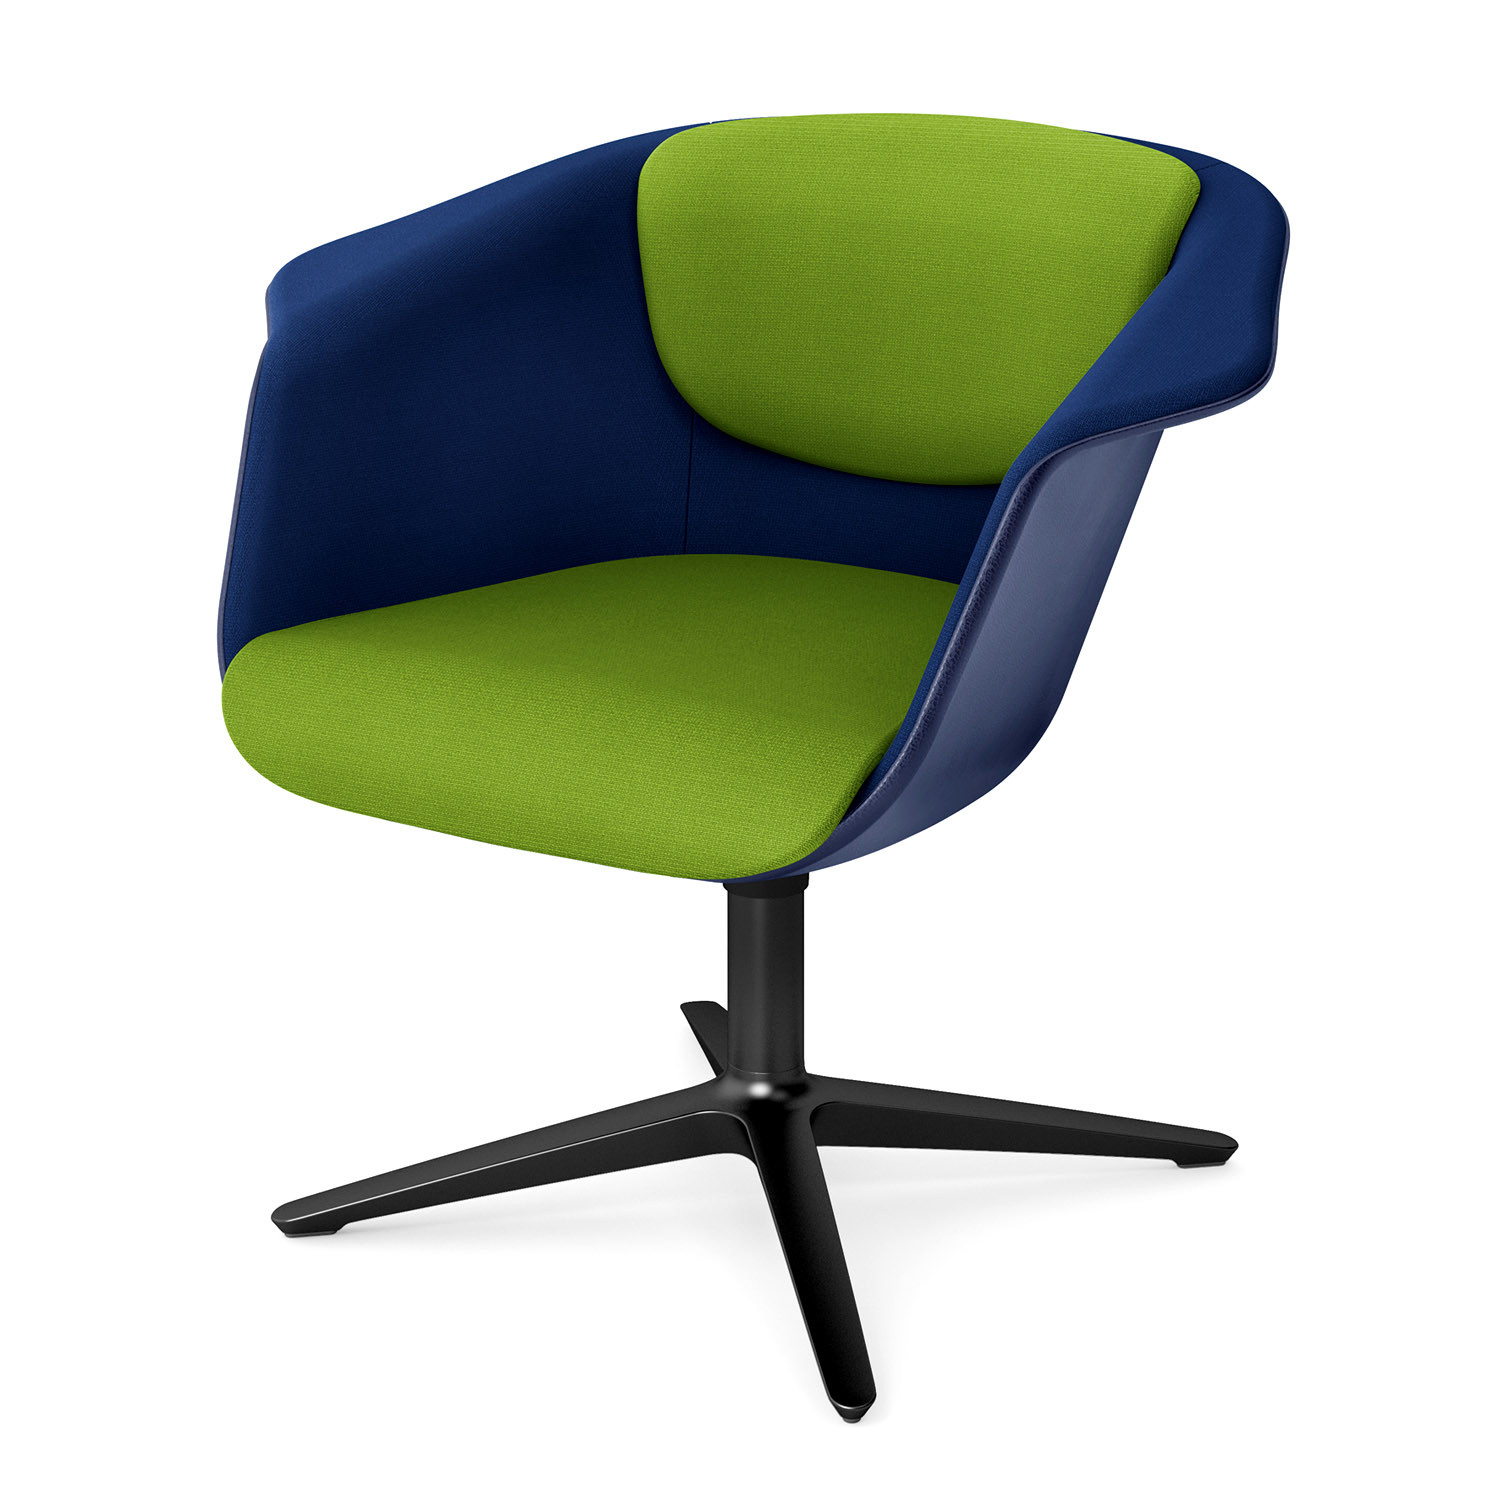 Sweetspot Lounge Chair from Sedus